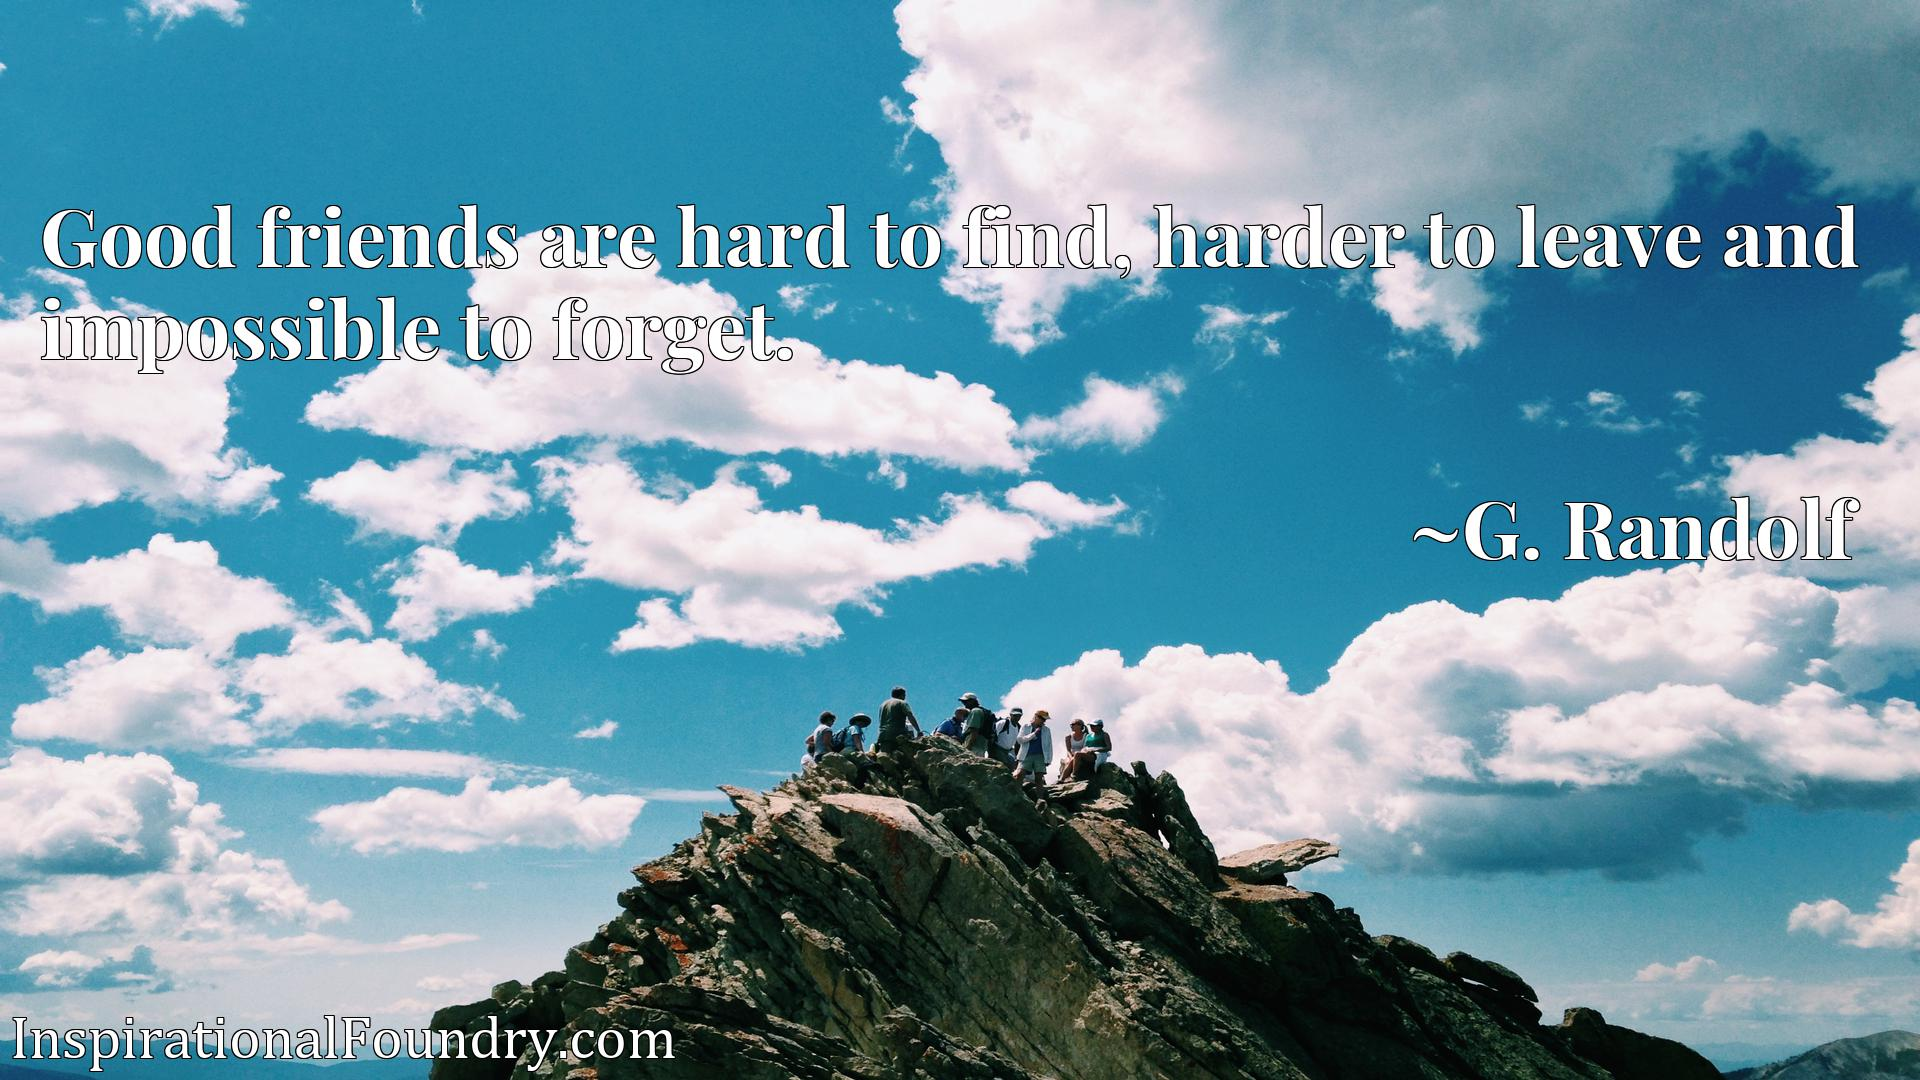 Quote Picture :Good friends are hard to find, harder to leave and impossible to forget.